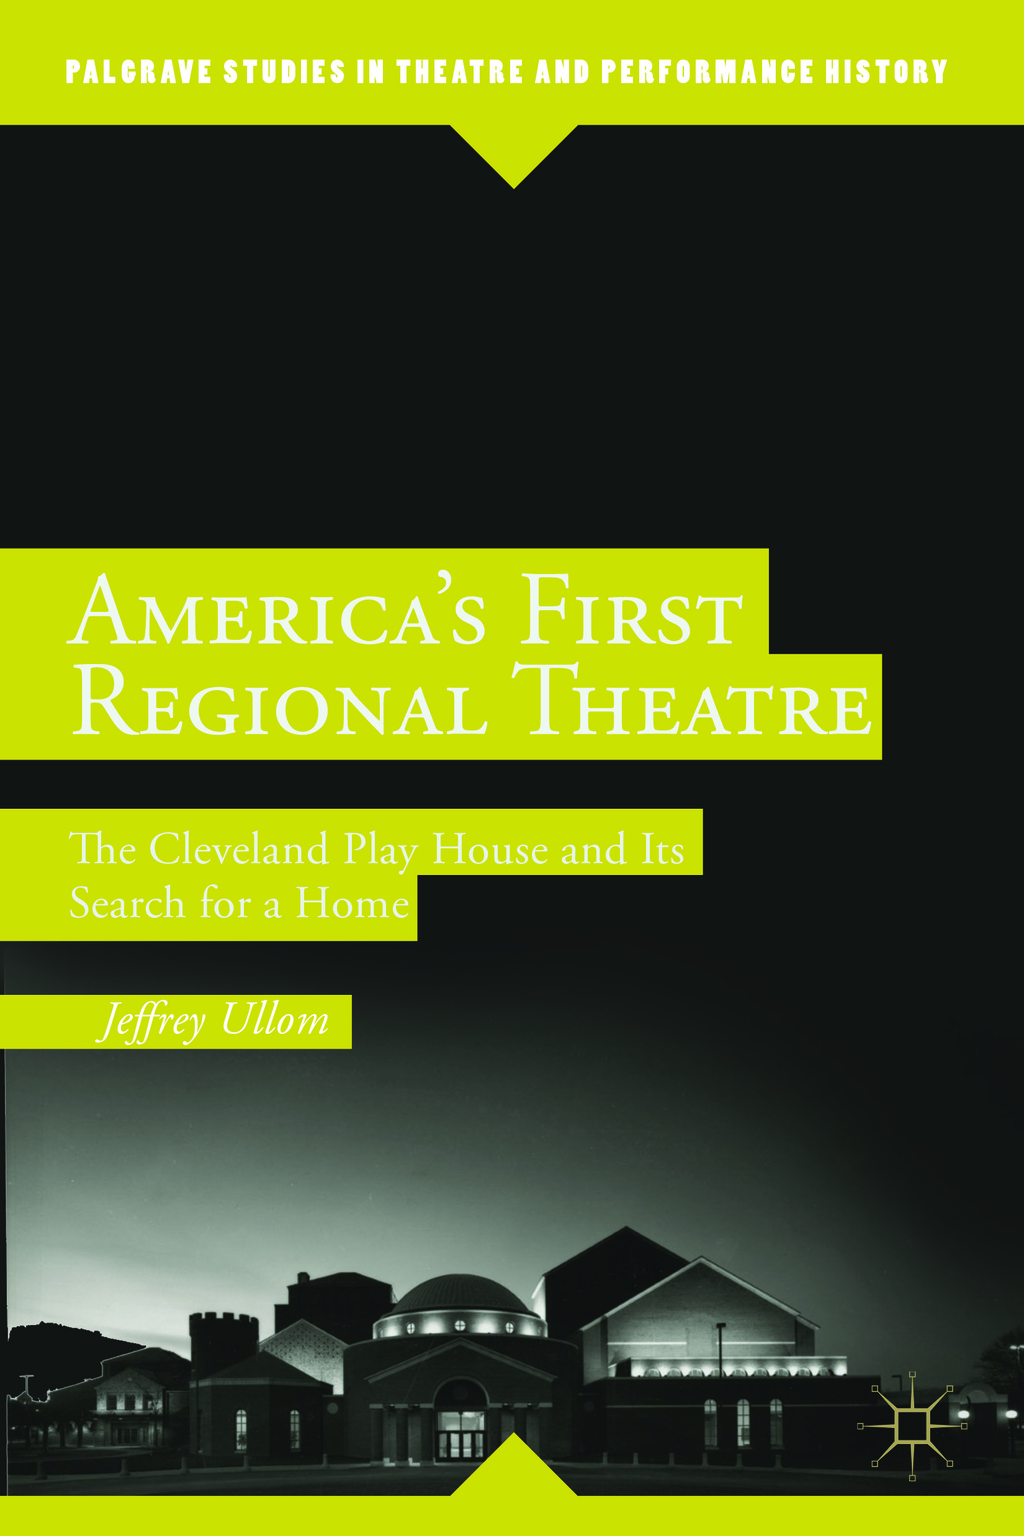 America's First Regional Theatre The Cleveland Play House and Its Search for a Home